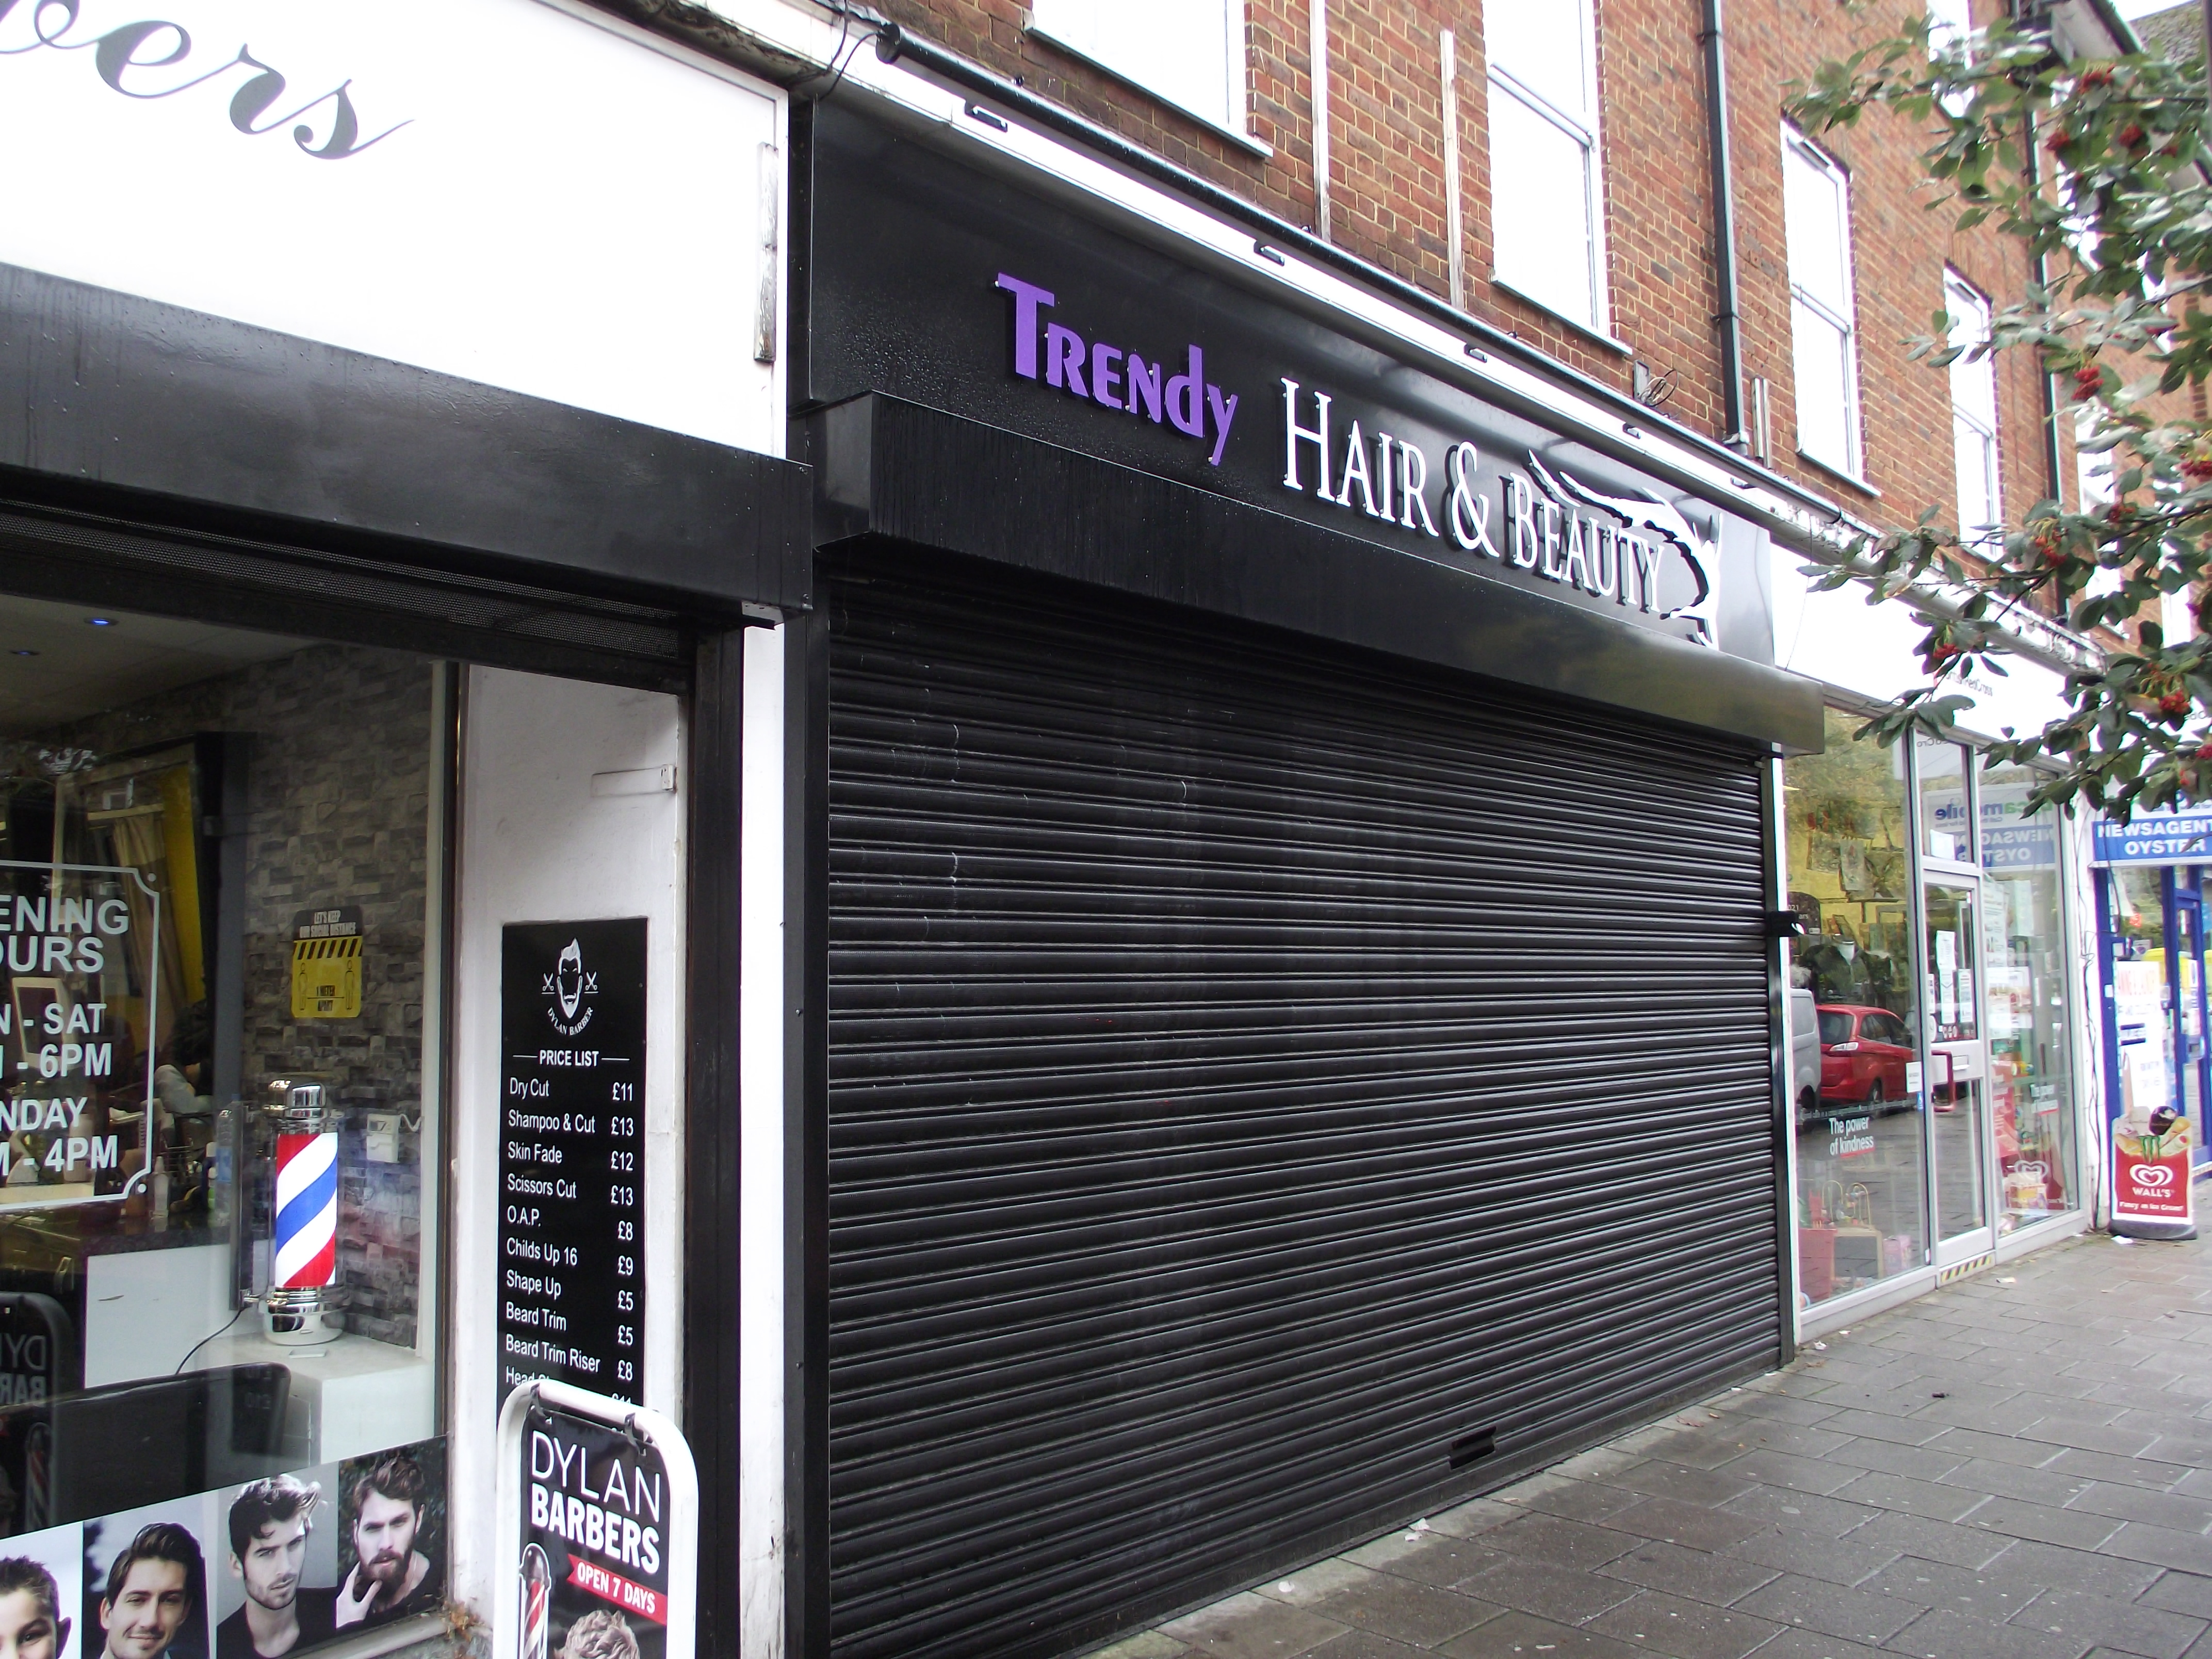 LEASE FOR SALE, Trendy Hair & Beauty, Eltham, London. Ref.1746